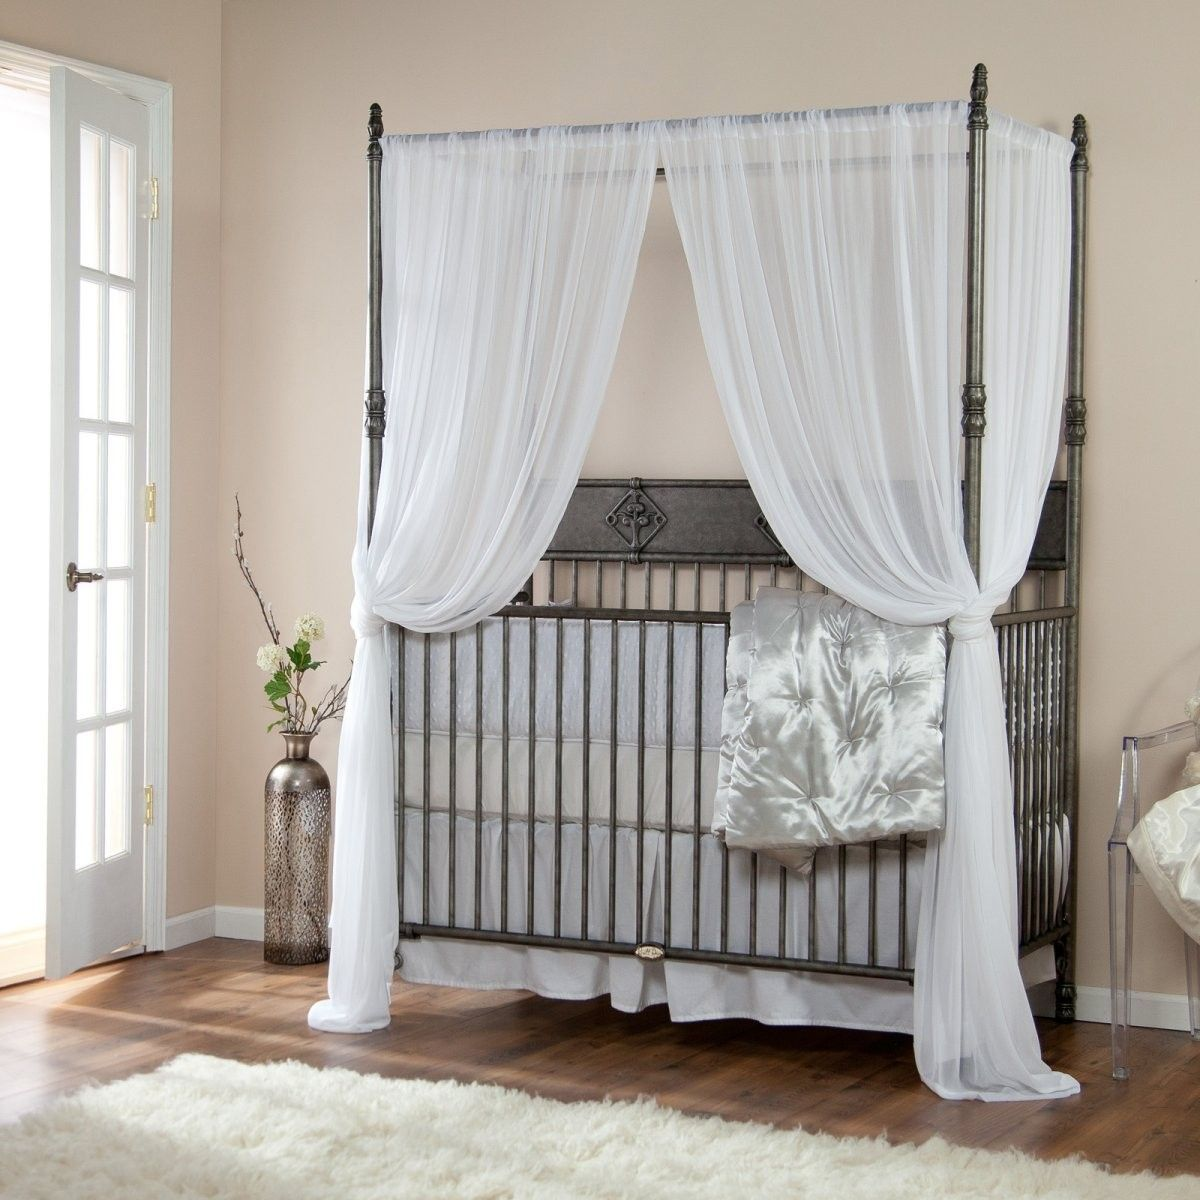 Future baby & cribs | Cribs Type and Styles for Your Baby on LoveKidsZone ...